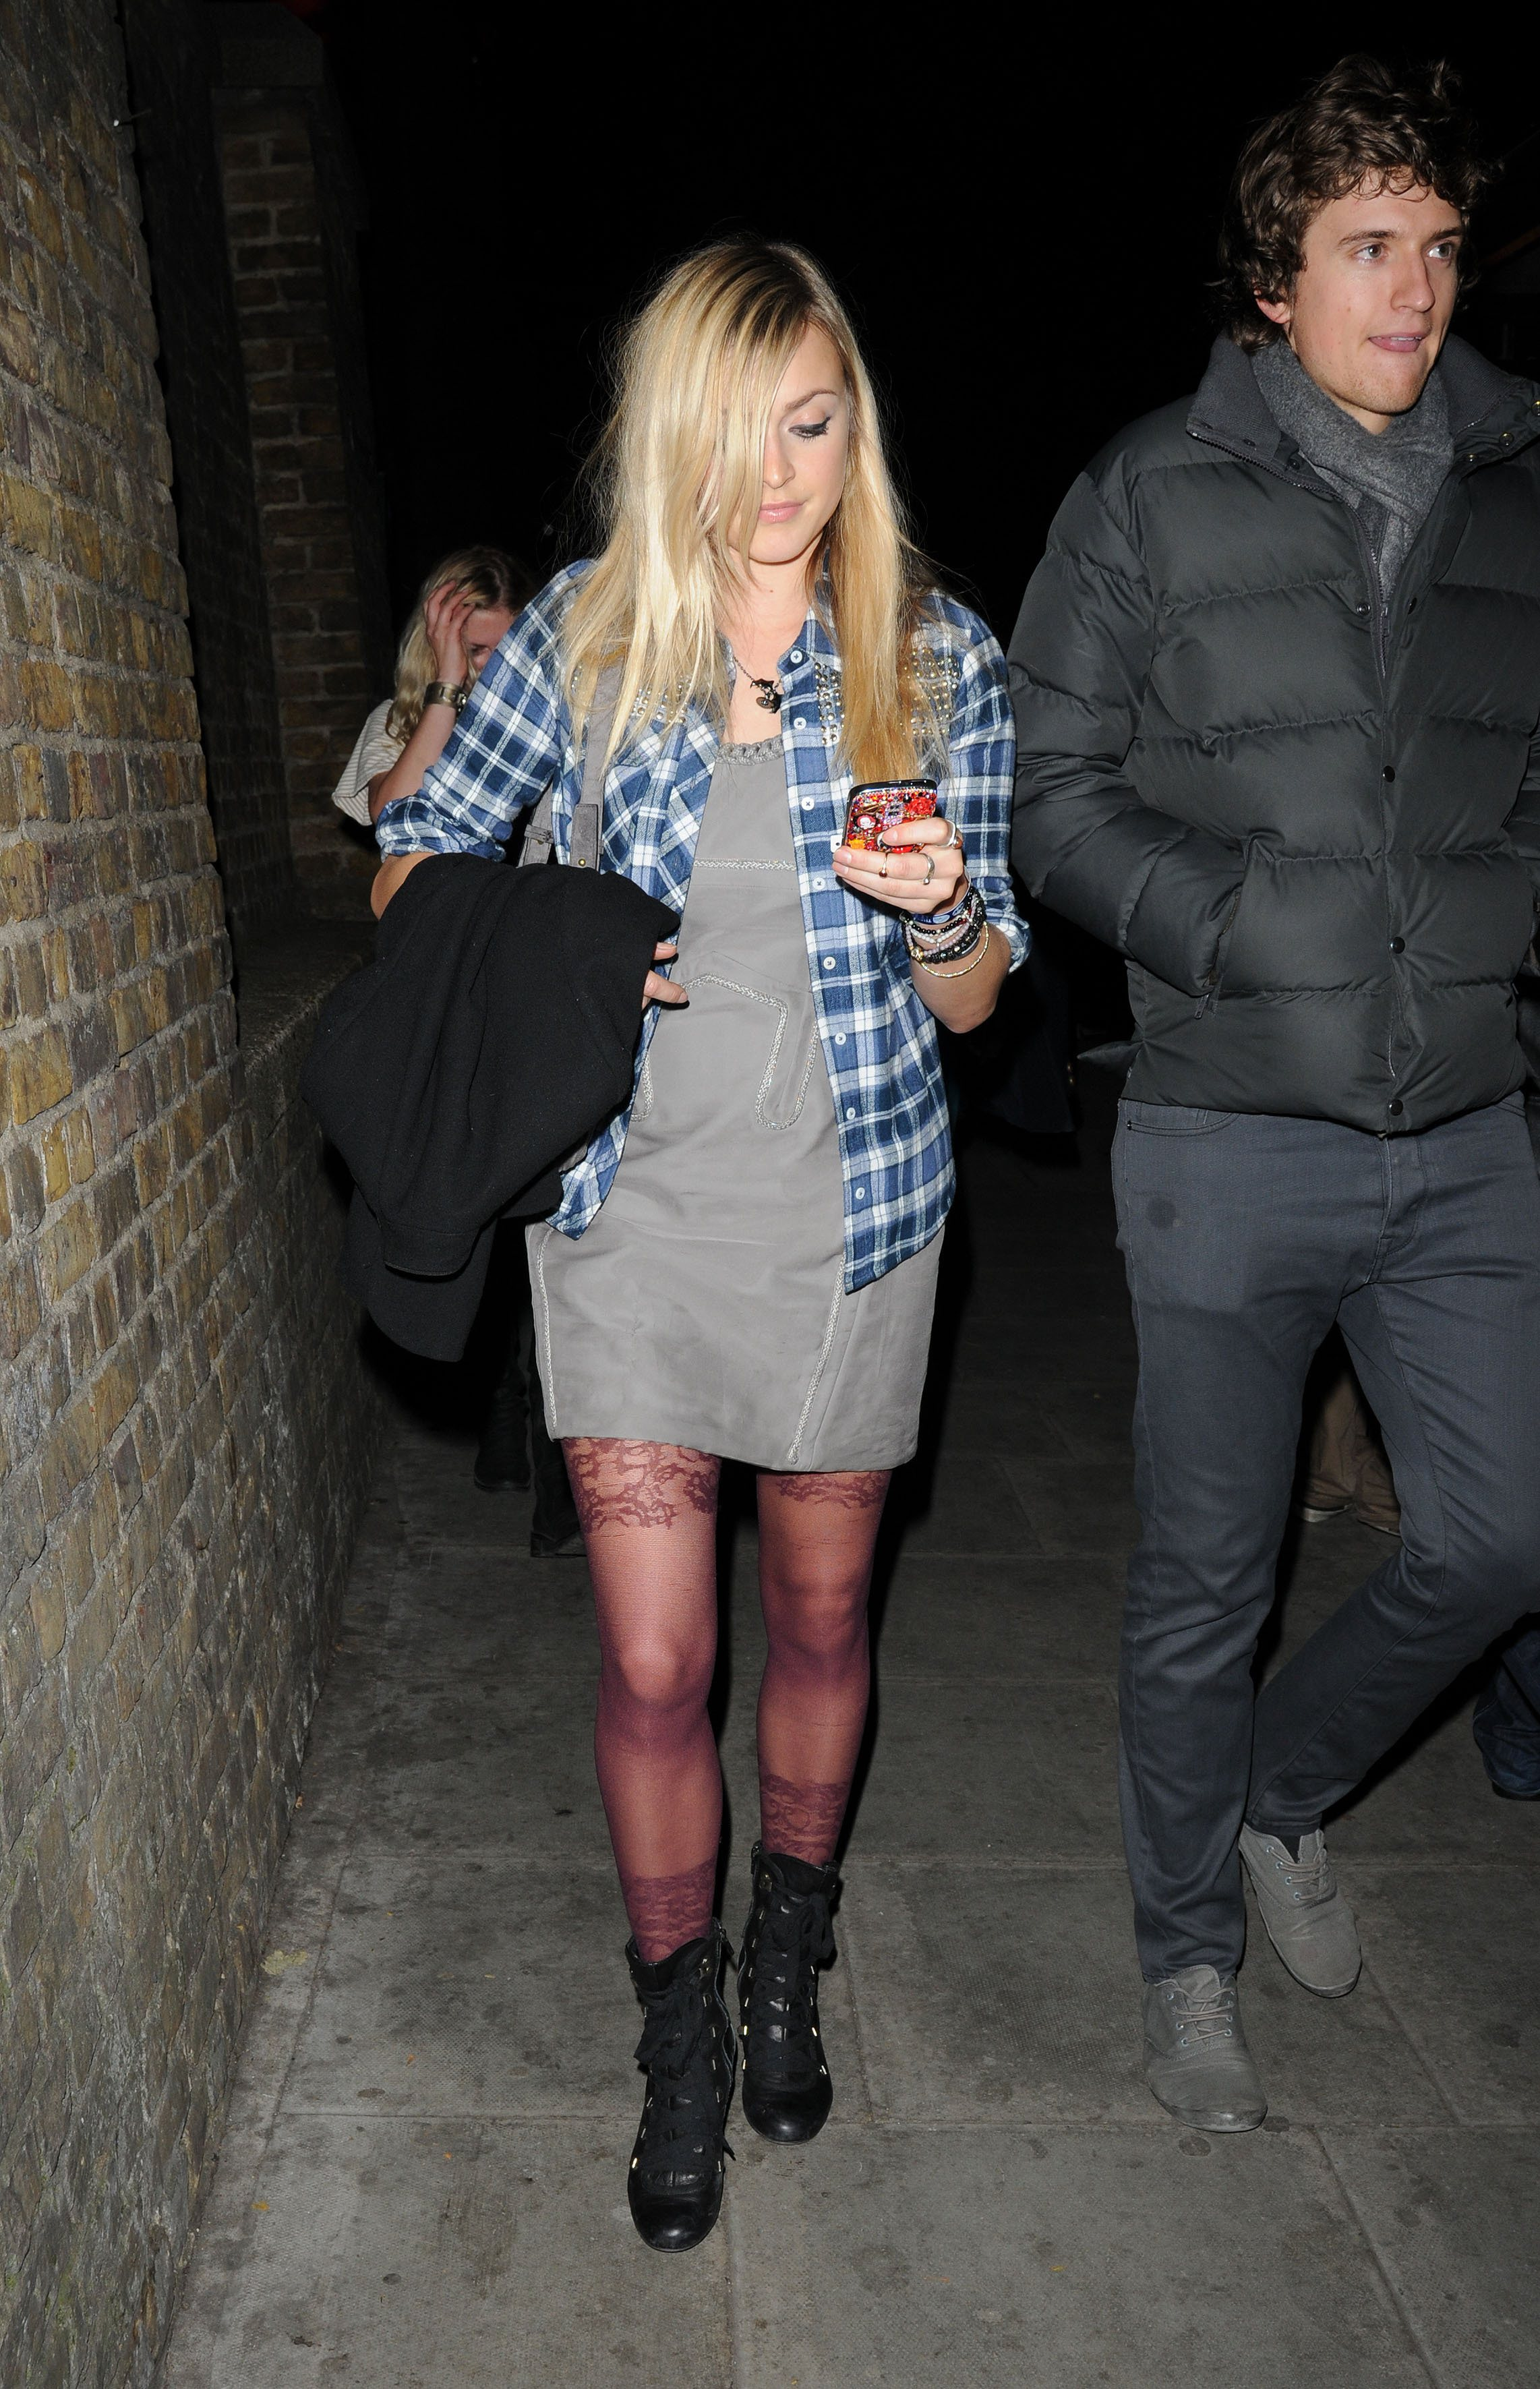 06365_Fearne_Cotton_Arrives_for_Robbie_Williams_gig_as_part_of_BBC_Electric_Proms_Festival_07_122_559lo.jpg